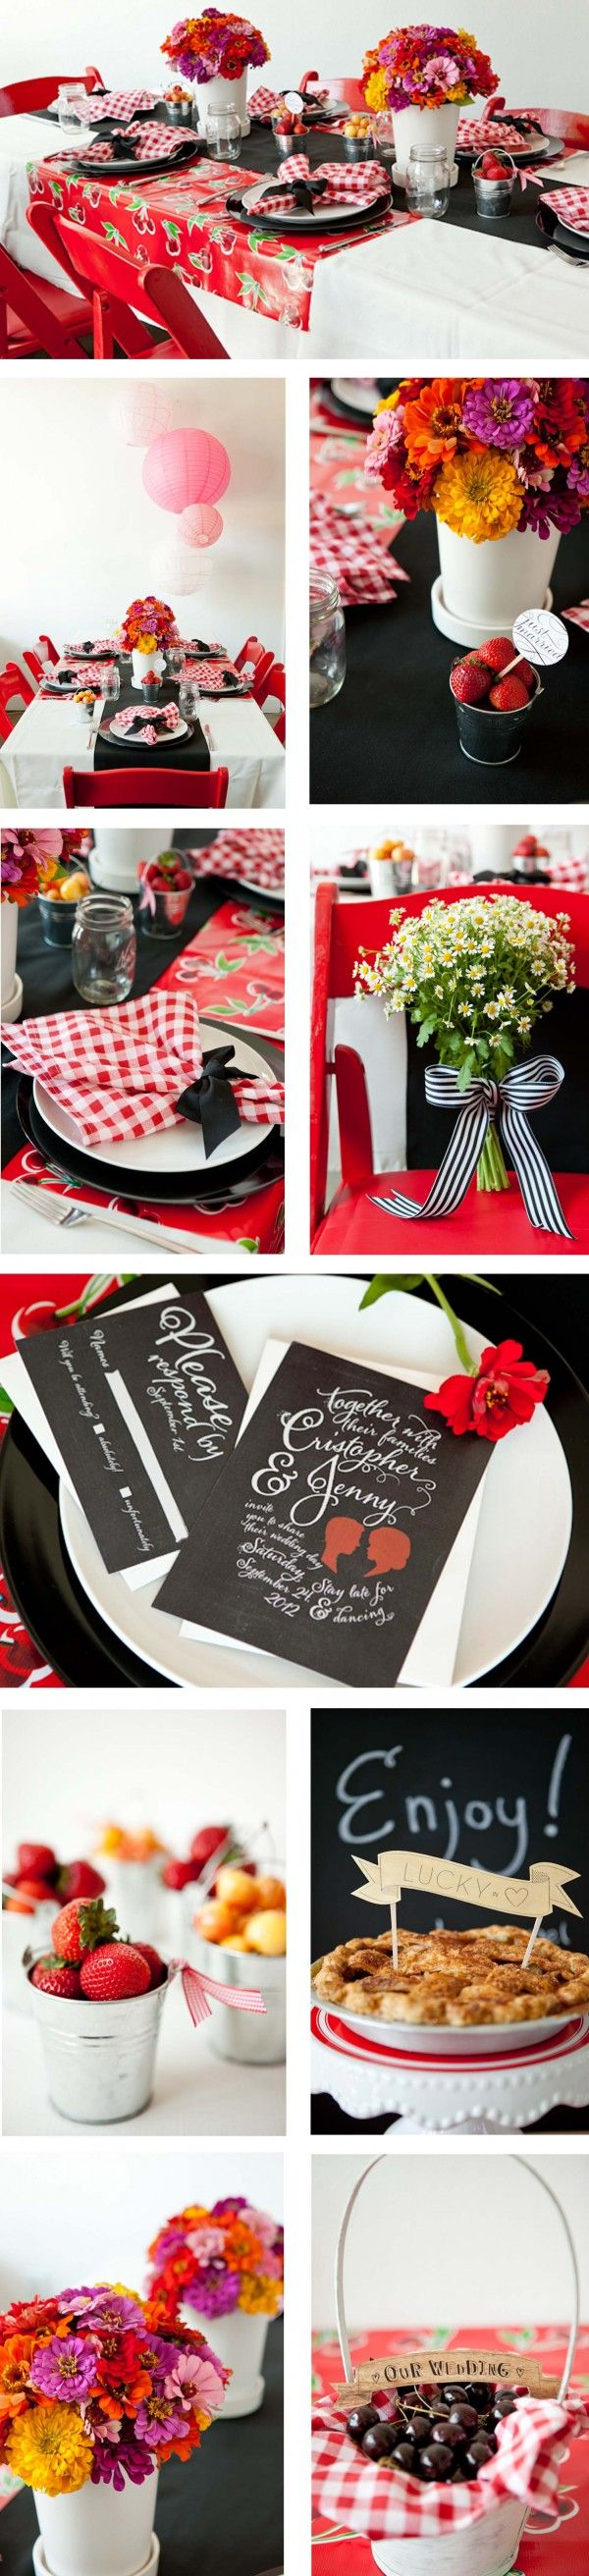 """""""Modern Chic Picnic Wedding""""  Love the strawberries in the tiny buckets.  Cute!"""